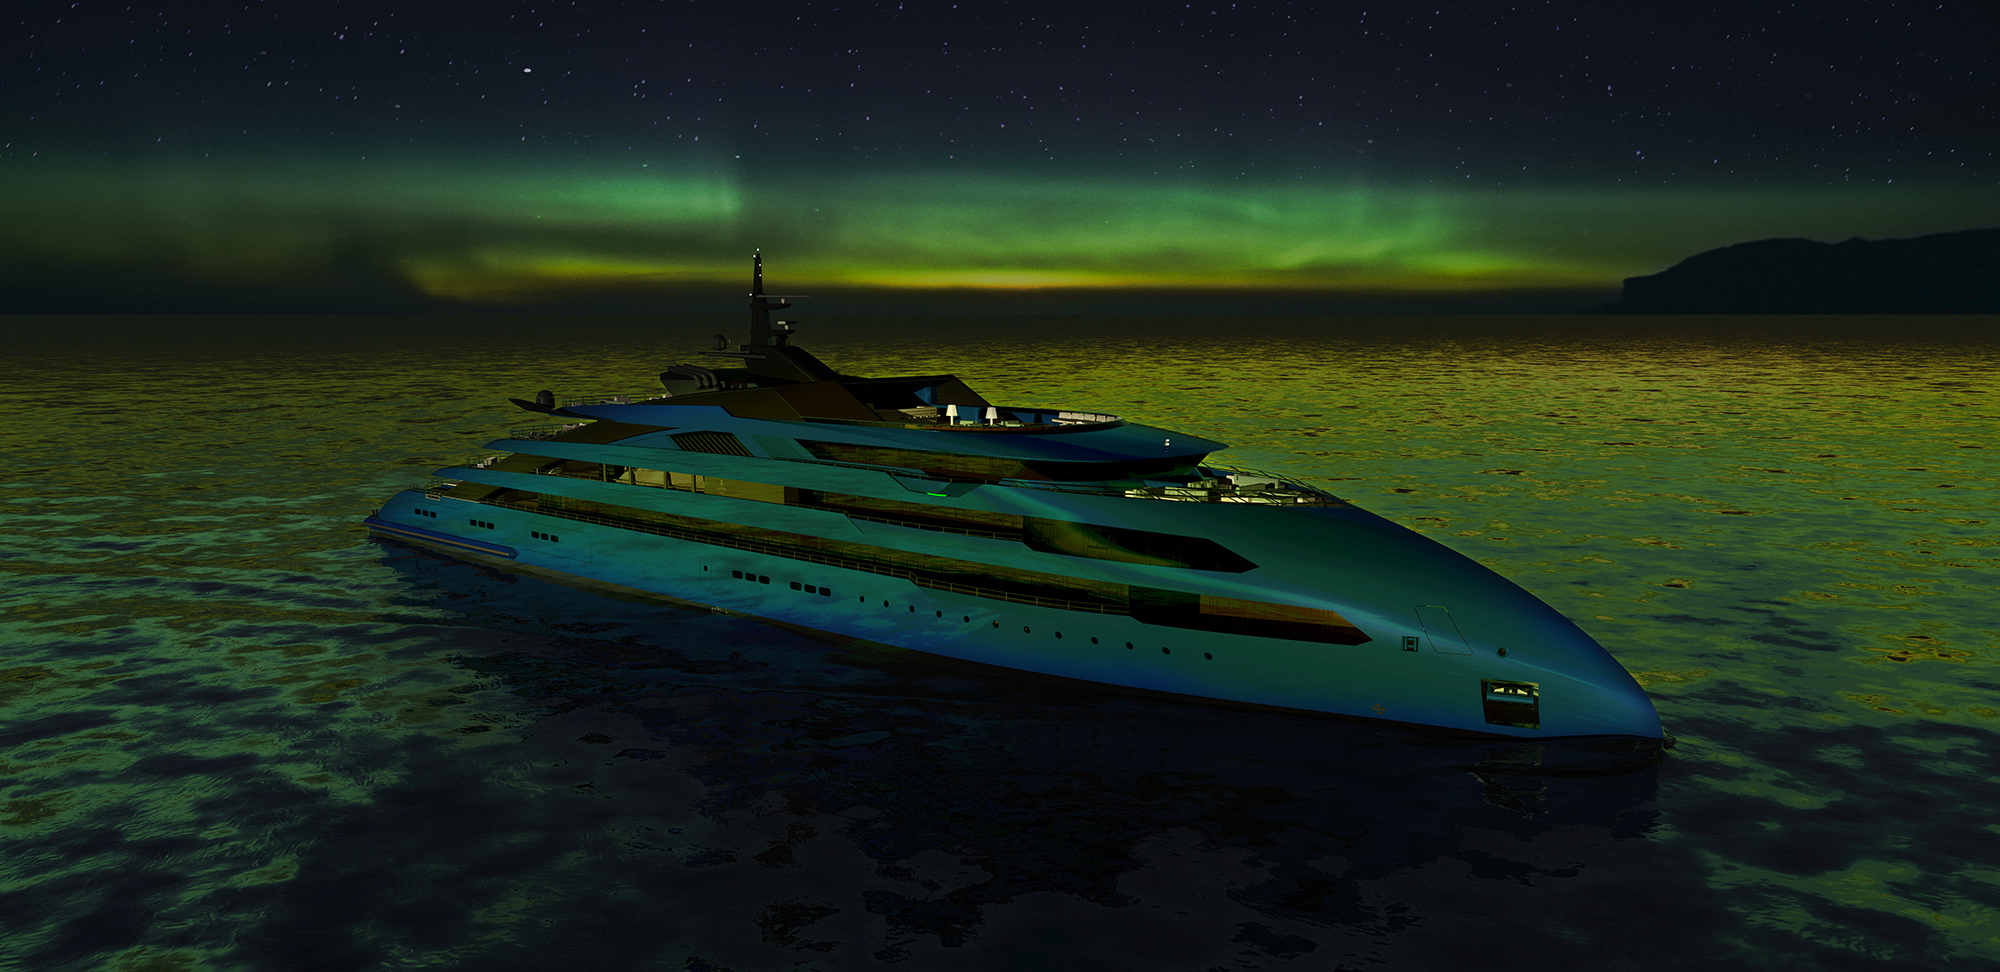 An ULSTEIN CX123 yacht under the Aurora Borealis.